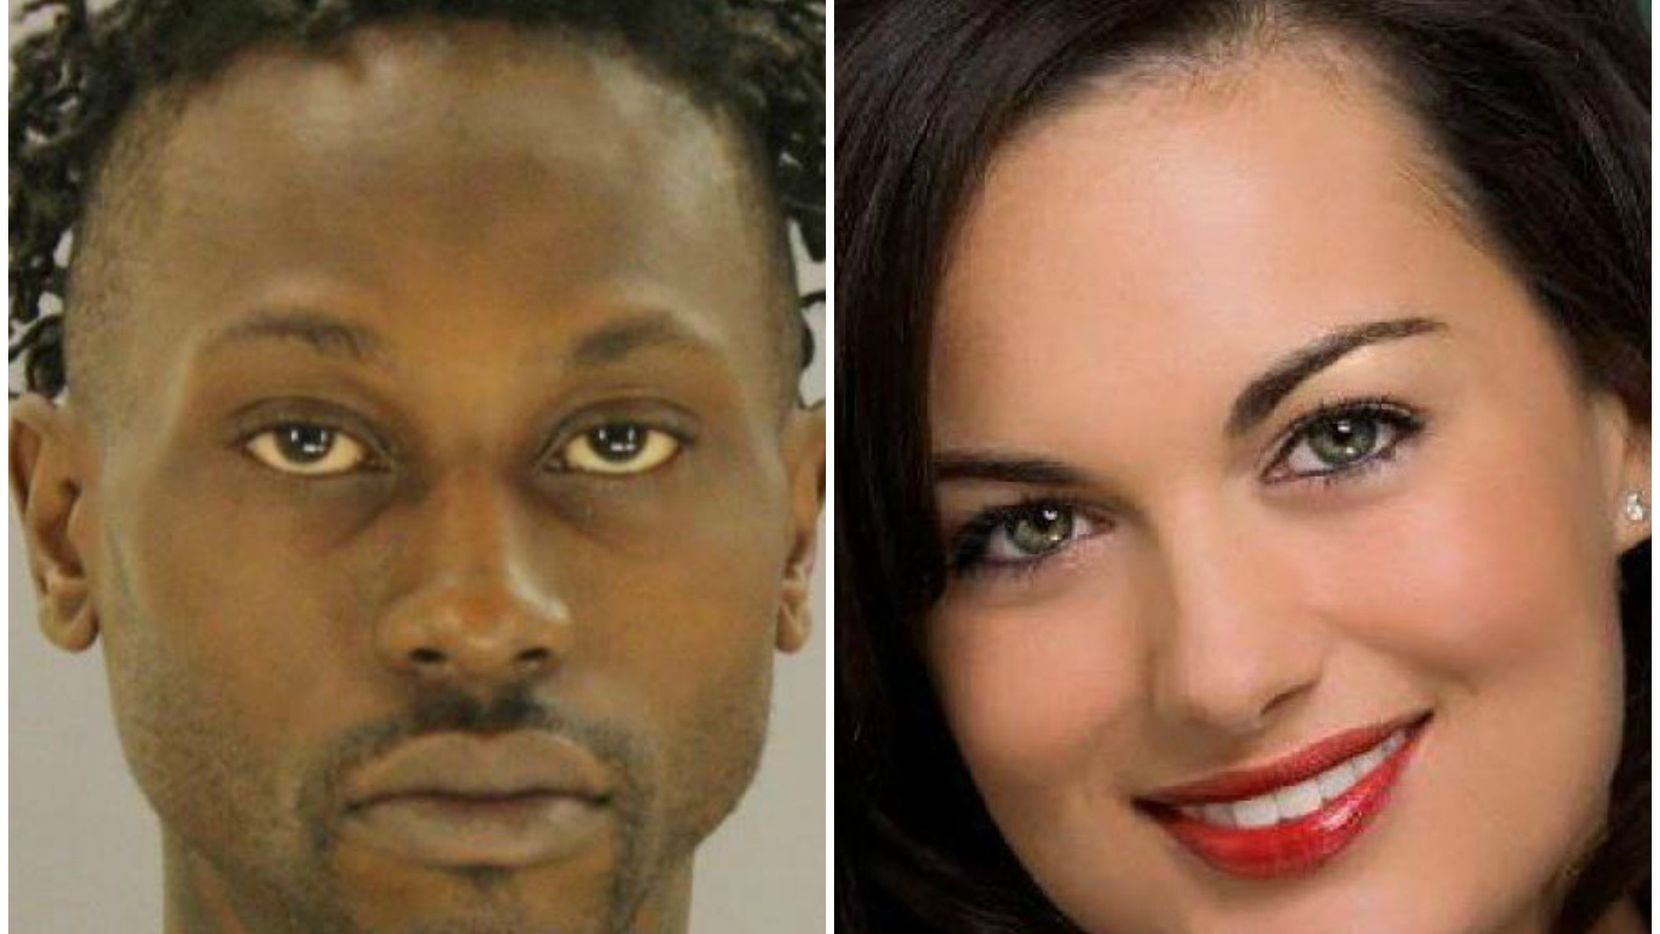 Kristopher Love could be sentenced to death for killing pediatric dentist Kendra Hatcher in her Uptown Dallas apartment garage.